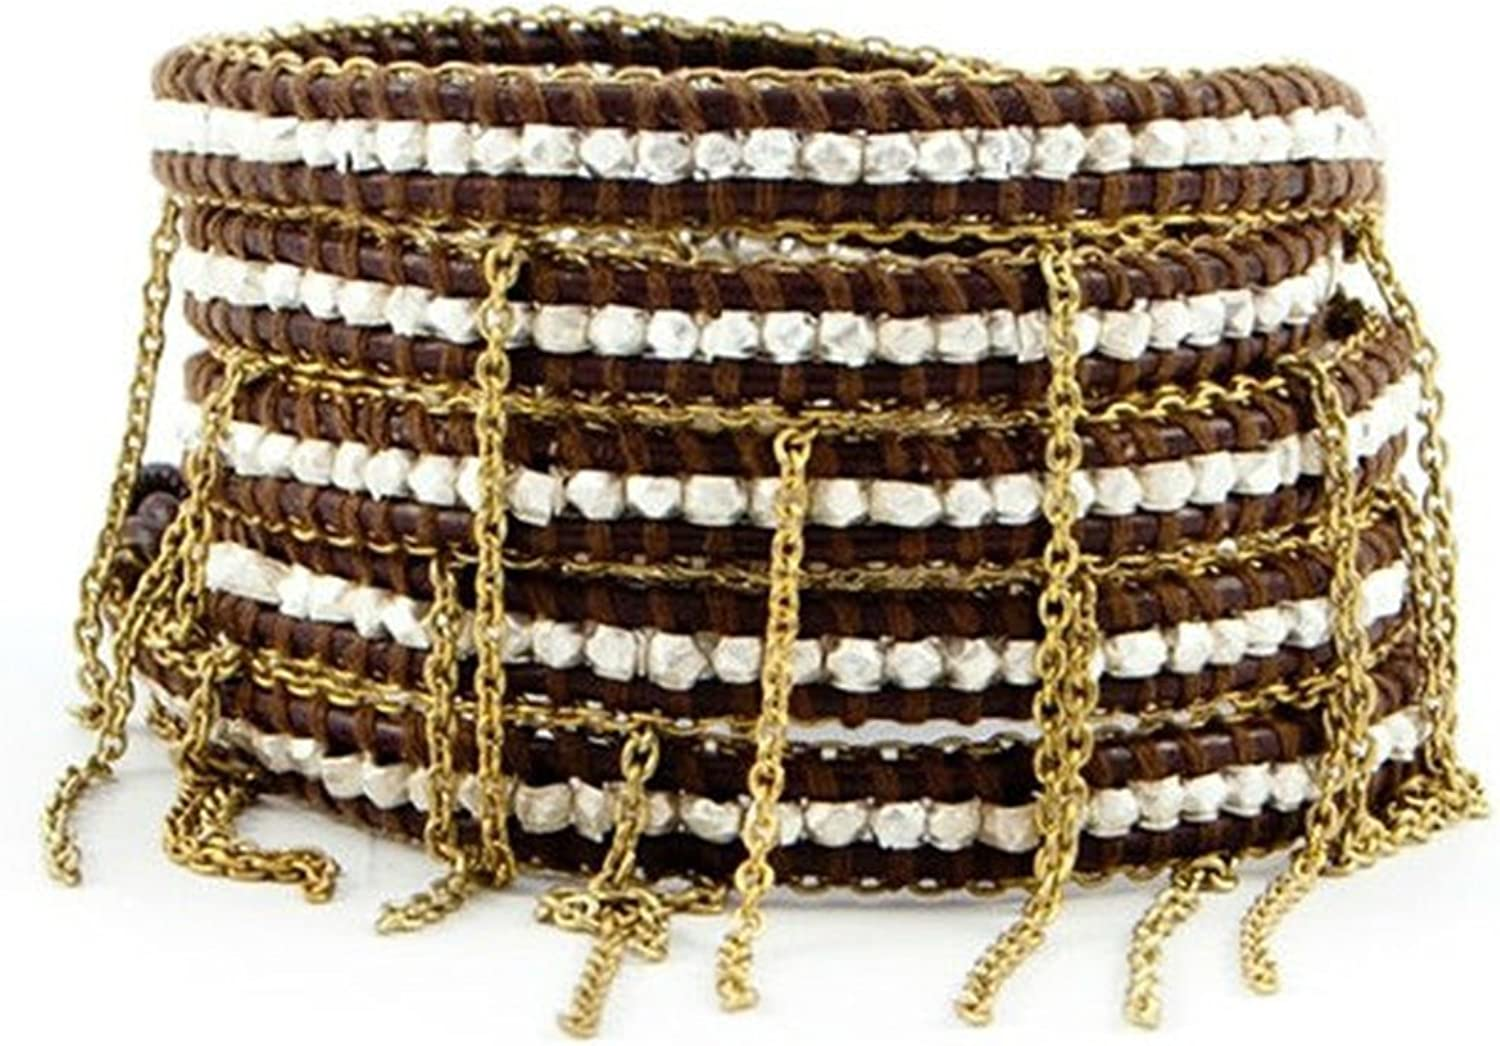 Heng Heng  Vintage Style Friendship Weaving Leather Five Wrap Natural Stone Beads With Chains Bracelet CLJ235  HNGBG000311